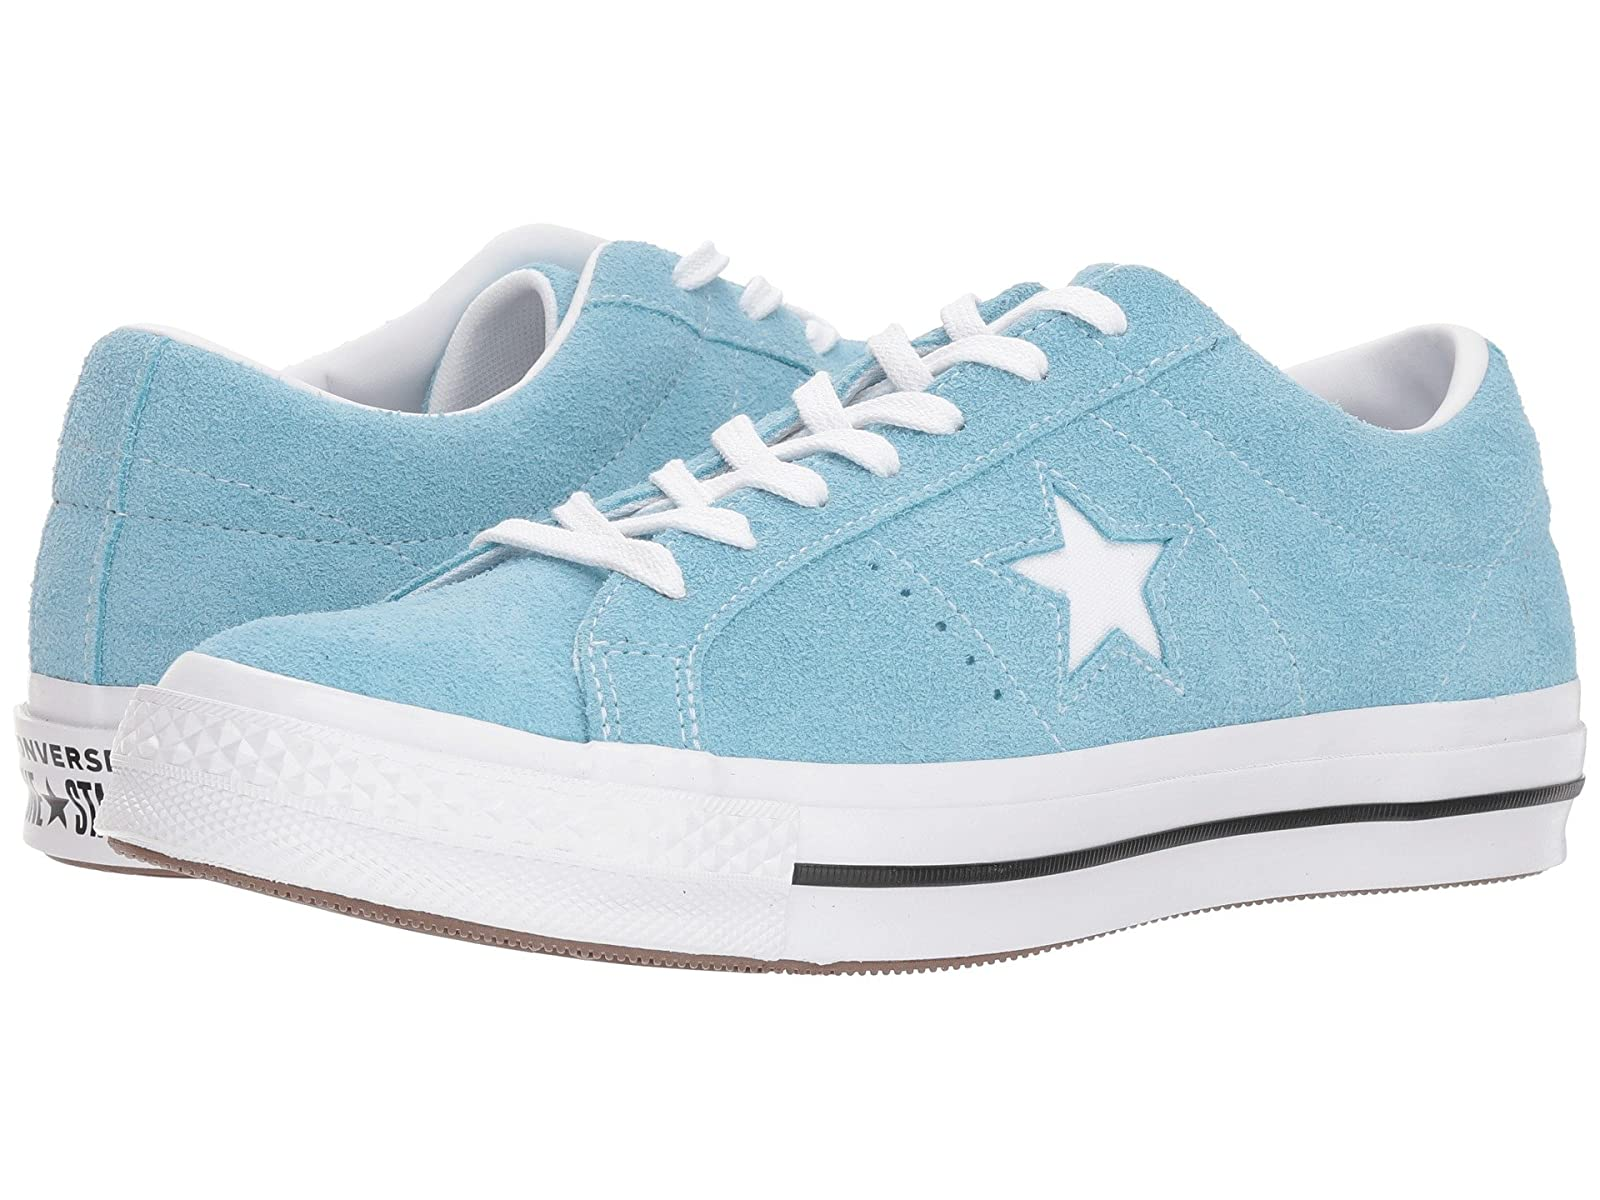 Converse One Star - Suede OxAtmospheric grades have affordable shoes